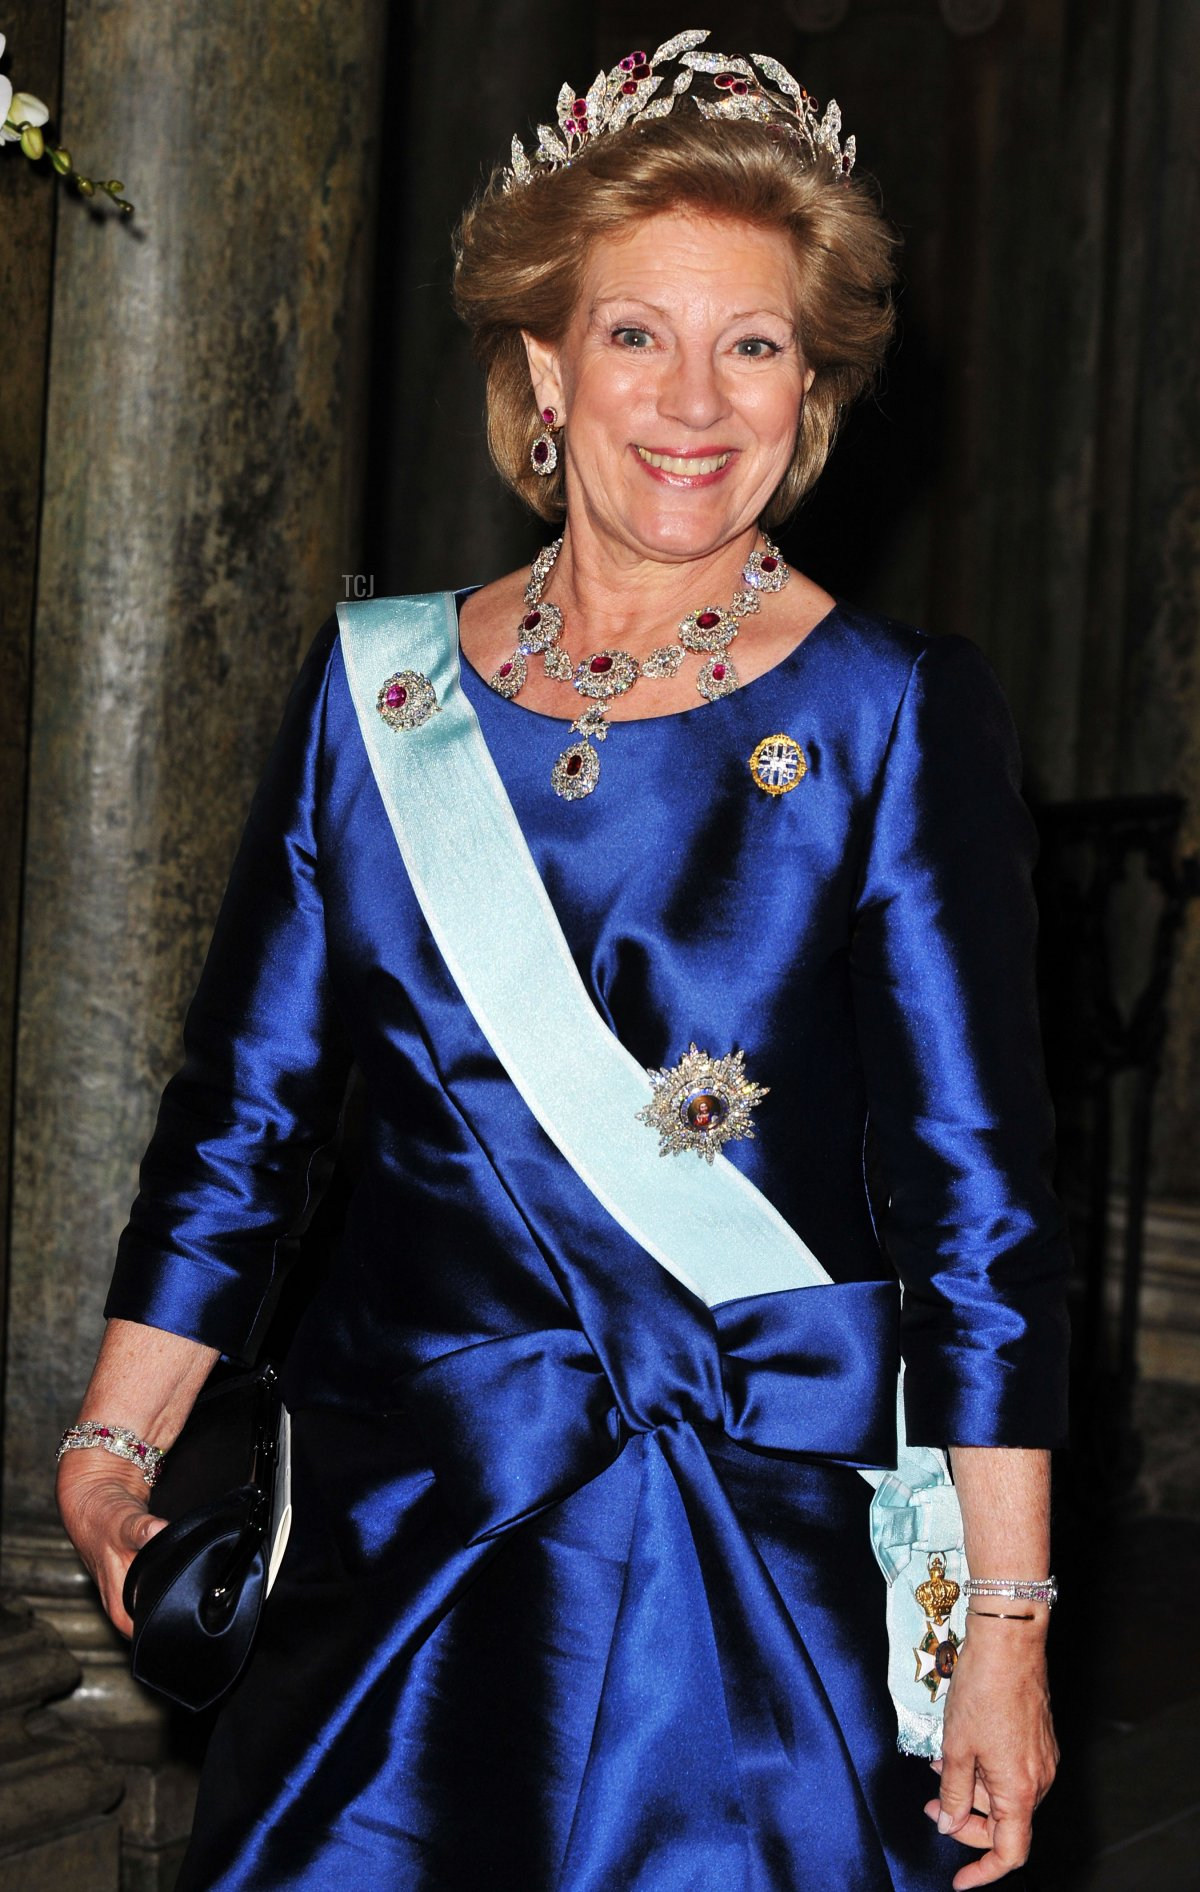 Queen Anne-Marie of Greece attends the wedding banquet for Crown Princess Victoria of Sweden and her husband Prince Daniel at the Royal Palace on June 19, 2010 in Stockholm, Sweden